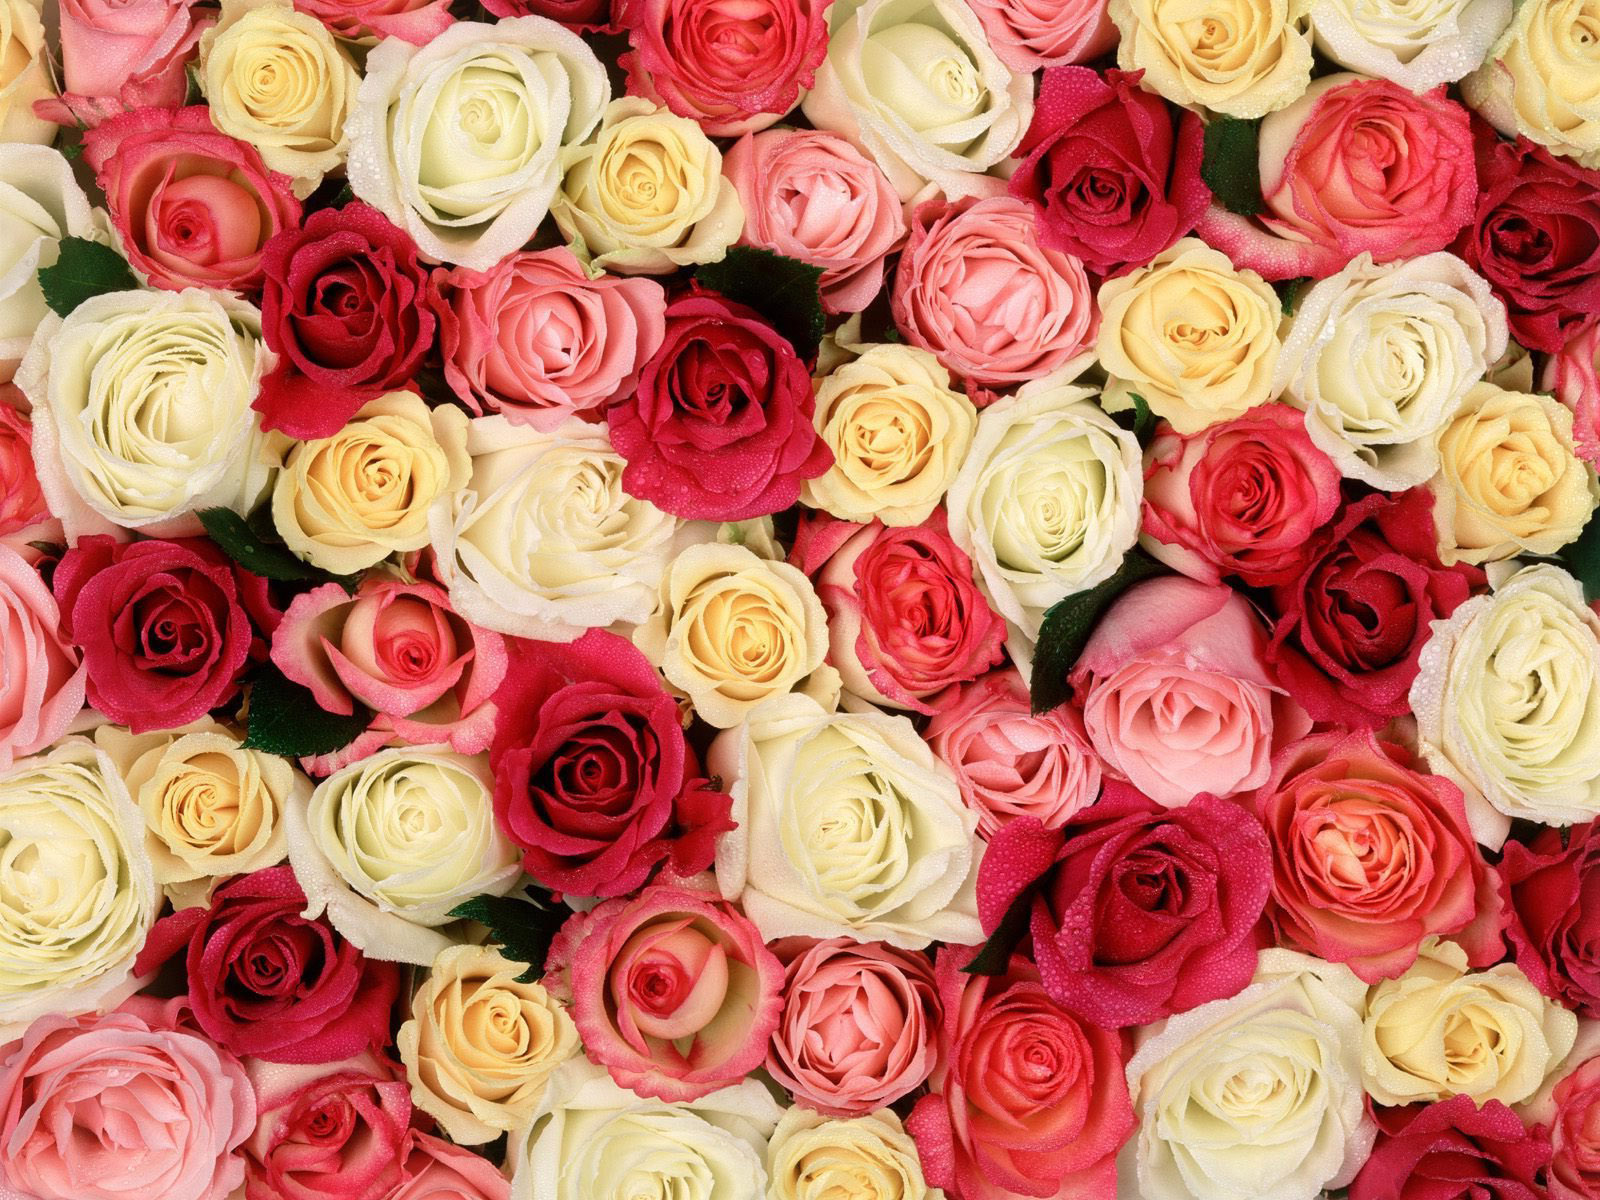 Roses Background.